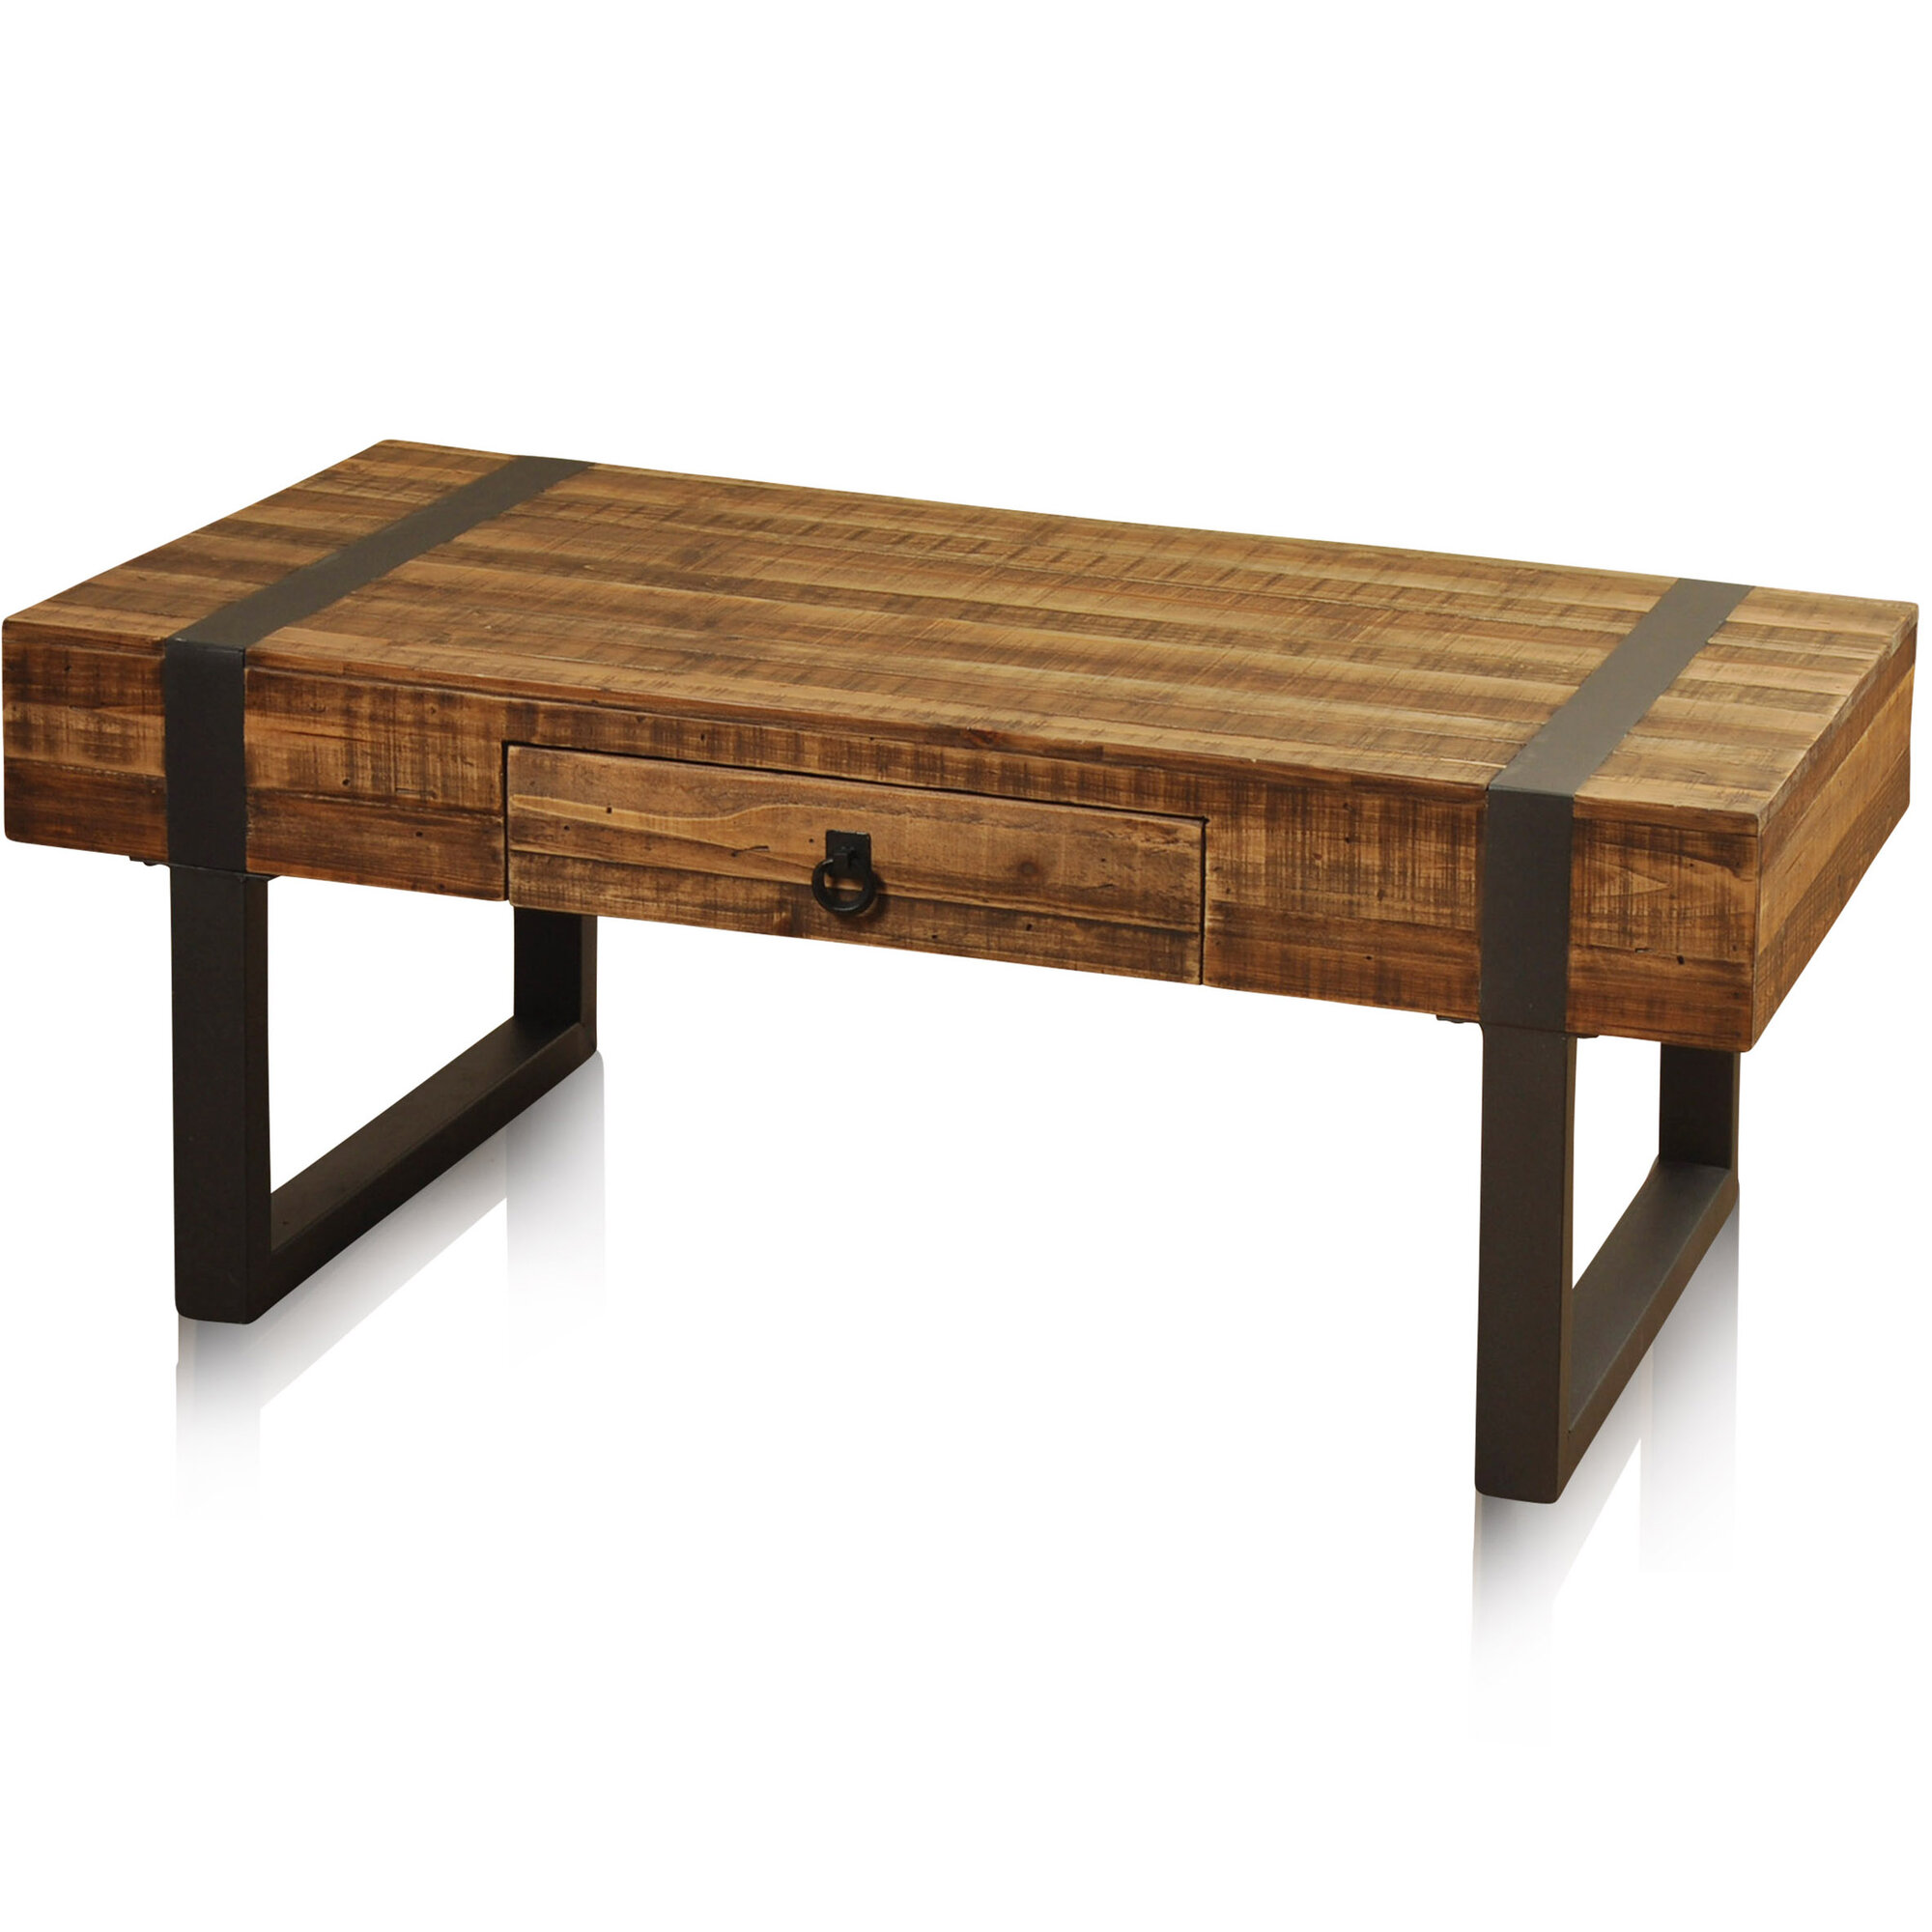 Laurel foundry modern farmhouse chatham coffee table for Modern farmhouse coffee table